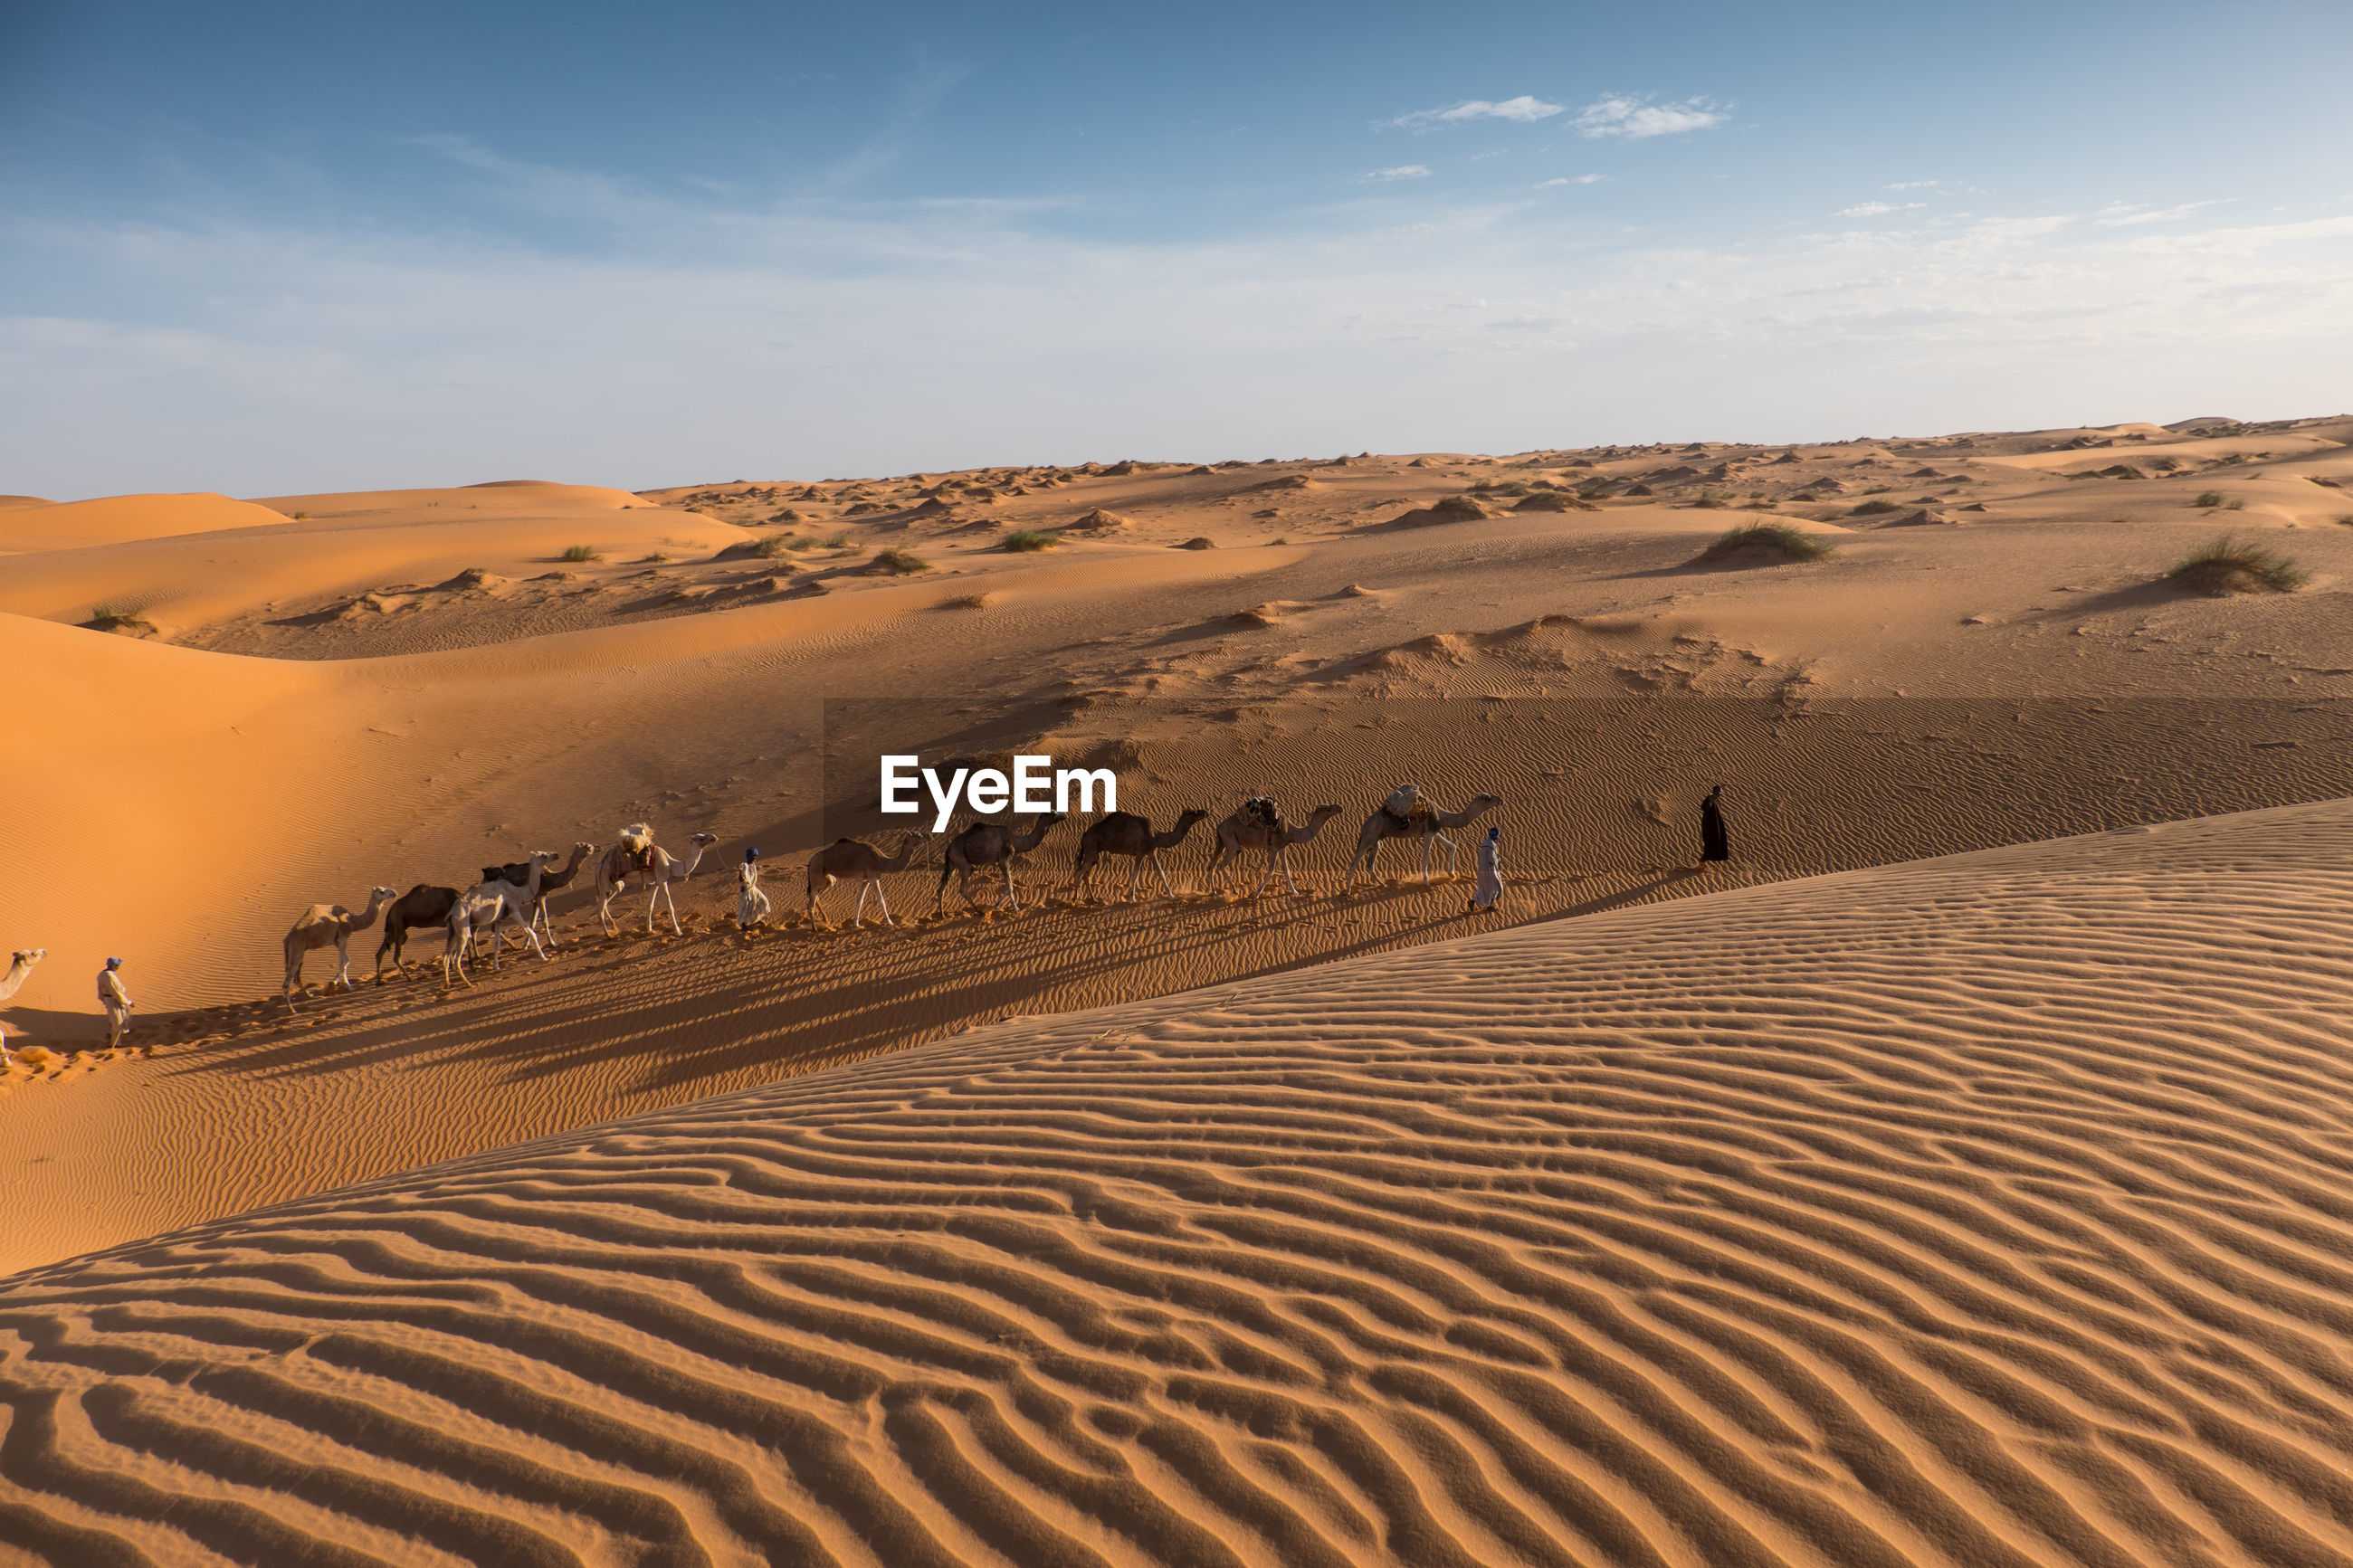 People and camels on sand dunes against sky